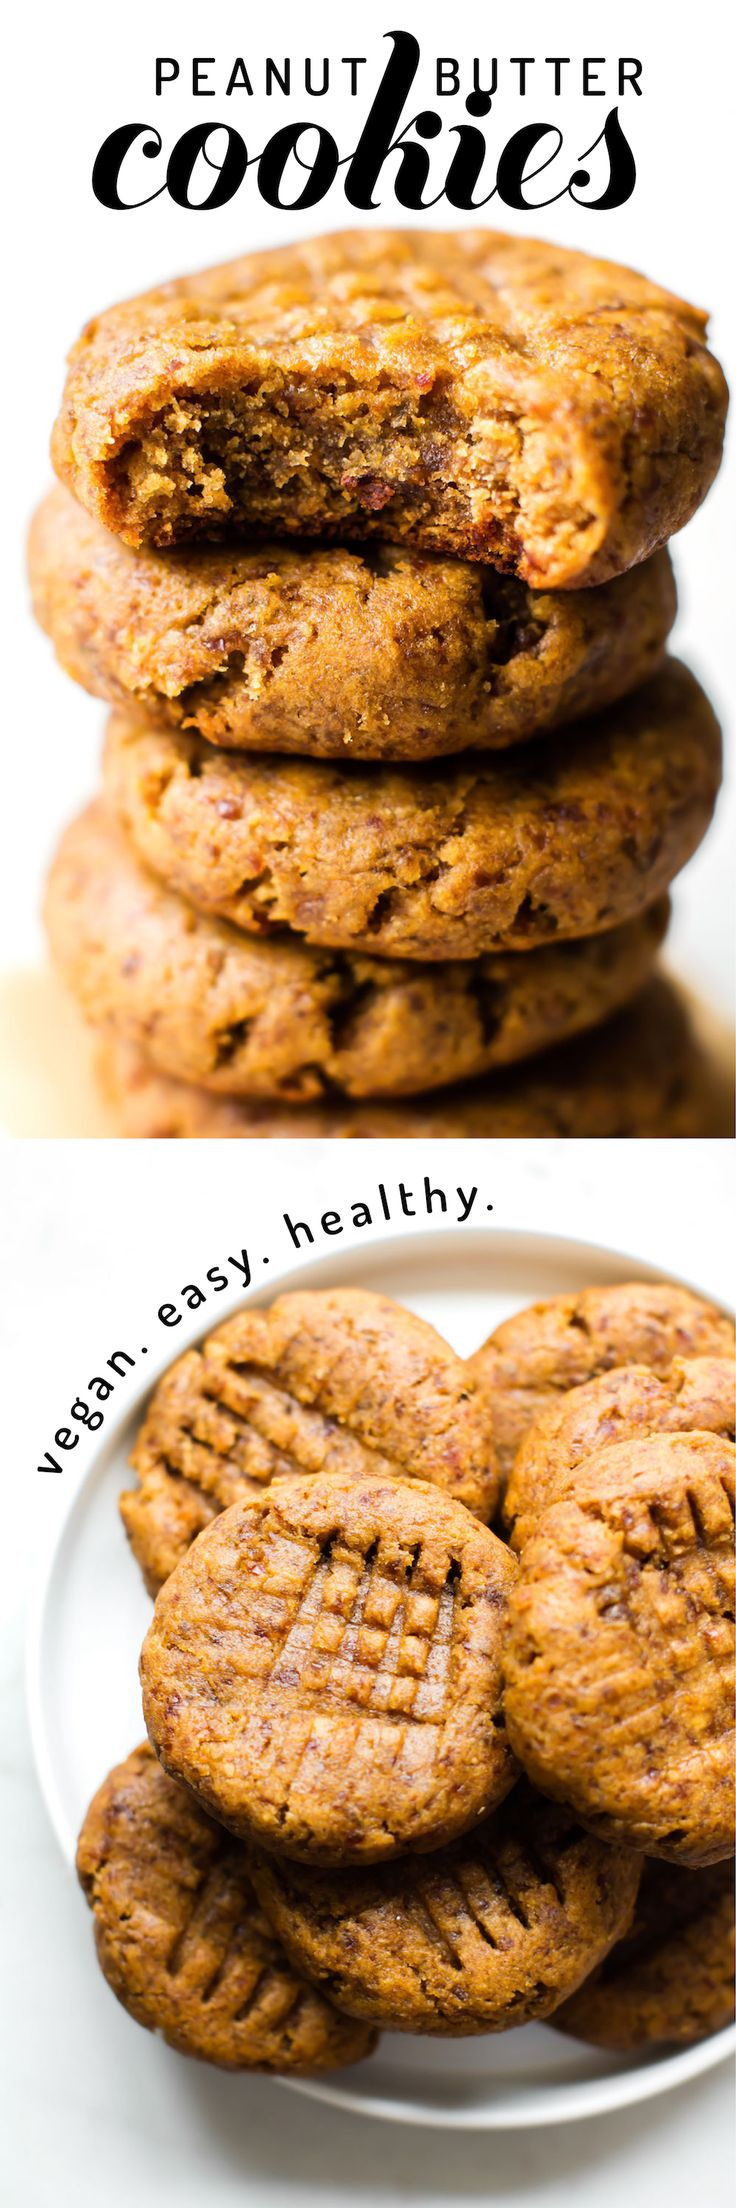 These healthy vegan peanut butter cookies are completely flourless, fruit-sweetened, and egg-free--made with just 5 simple ingredients in under 30 minutes! via @Natalie | Feasting on Fruit